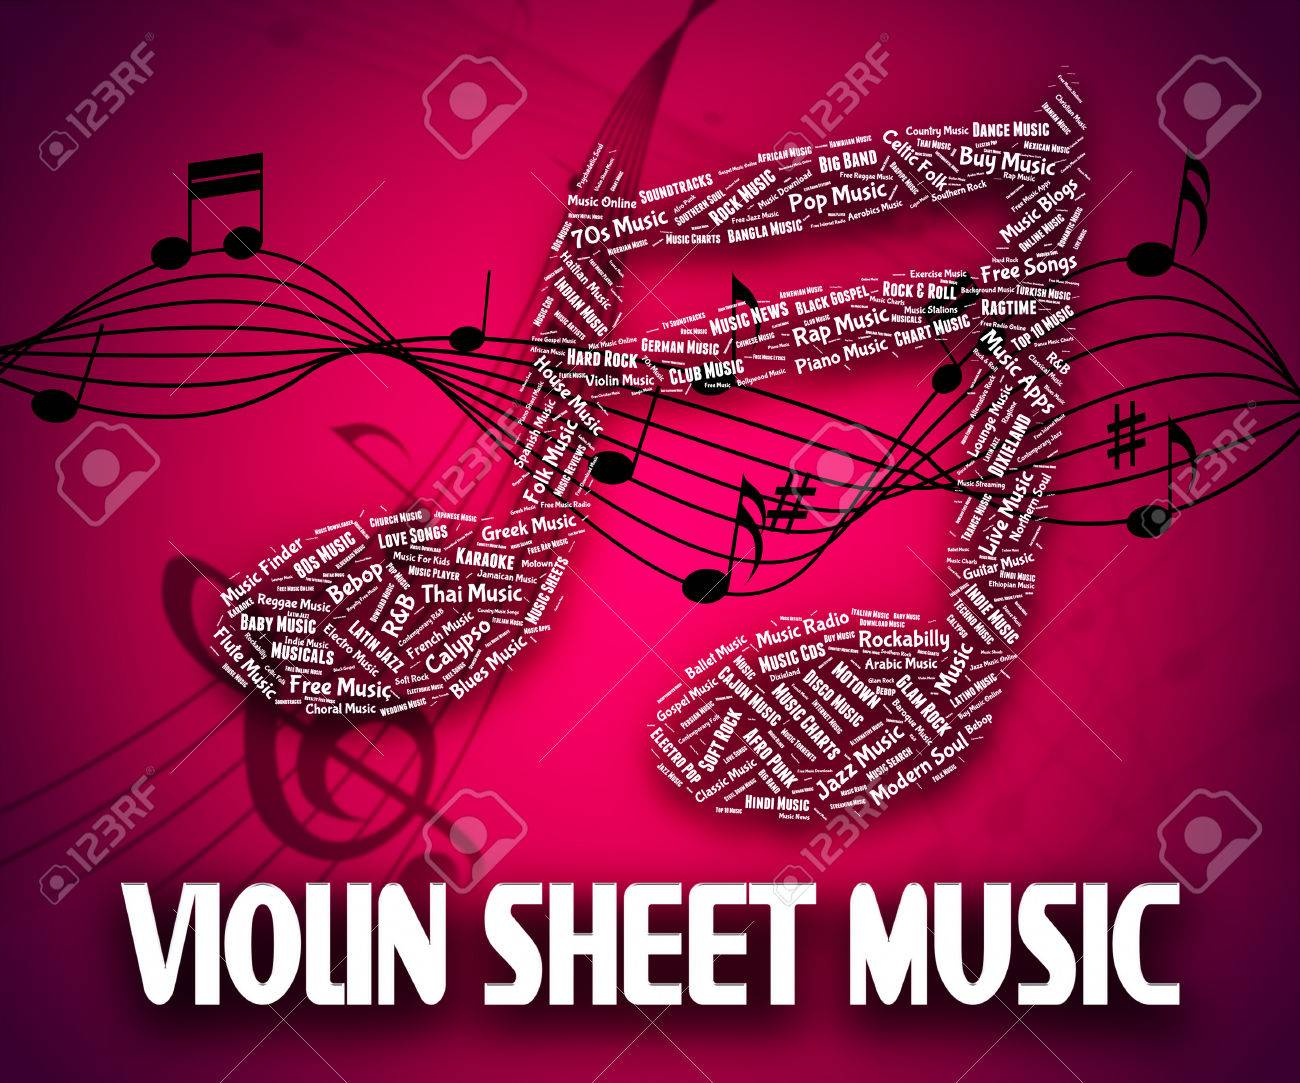 Violin Sheet Music Meaning Sound Track And Soundtrack